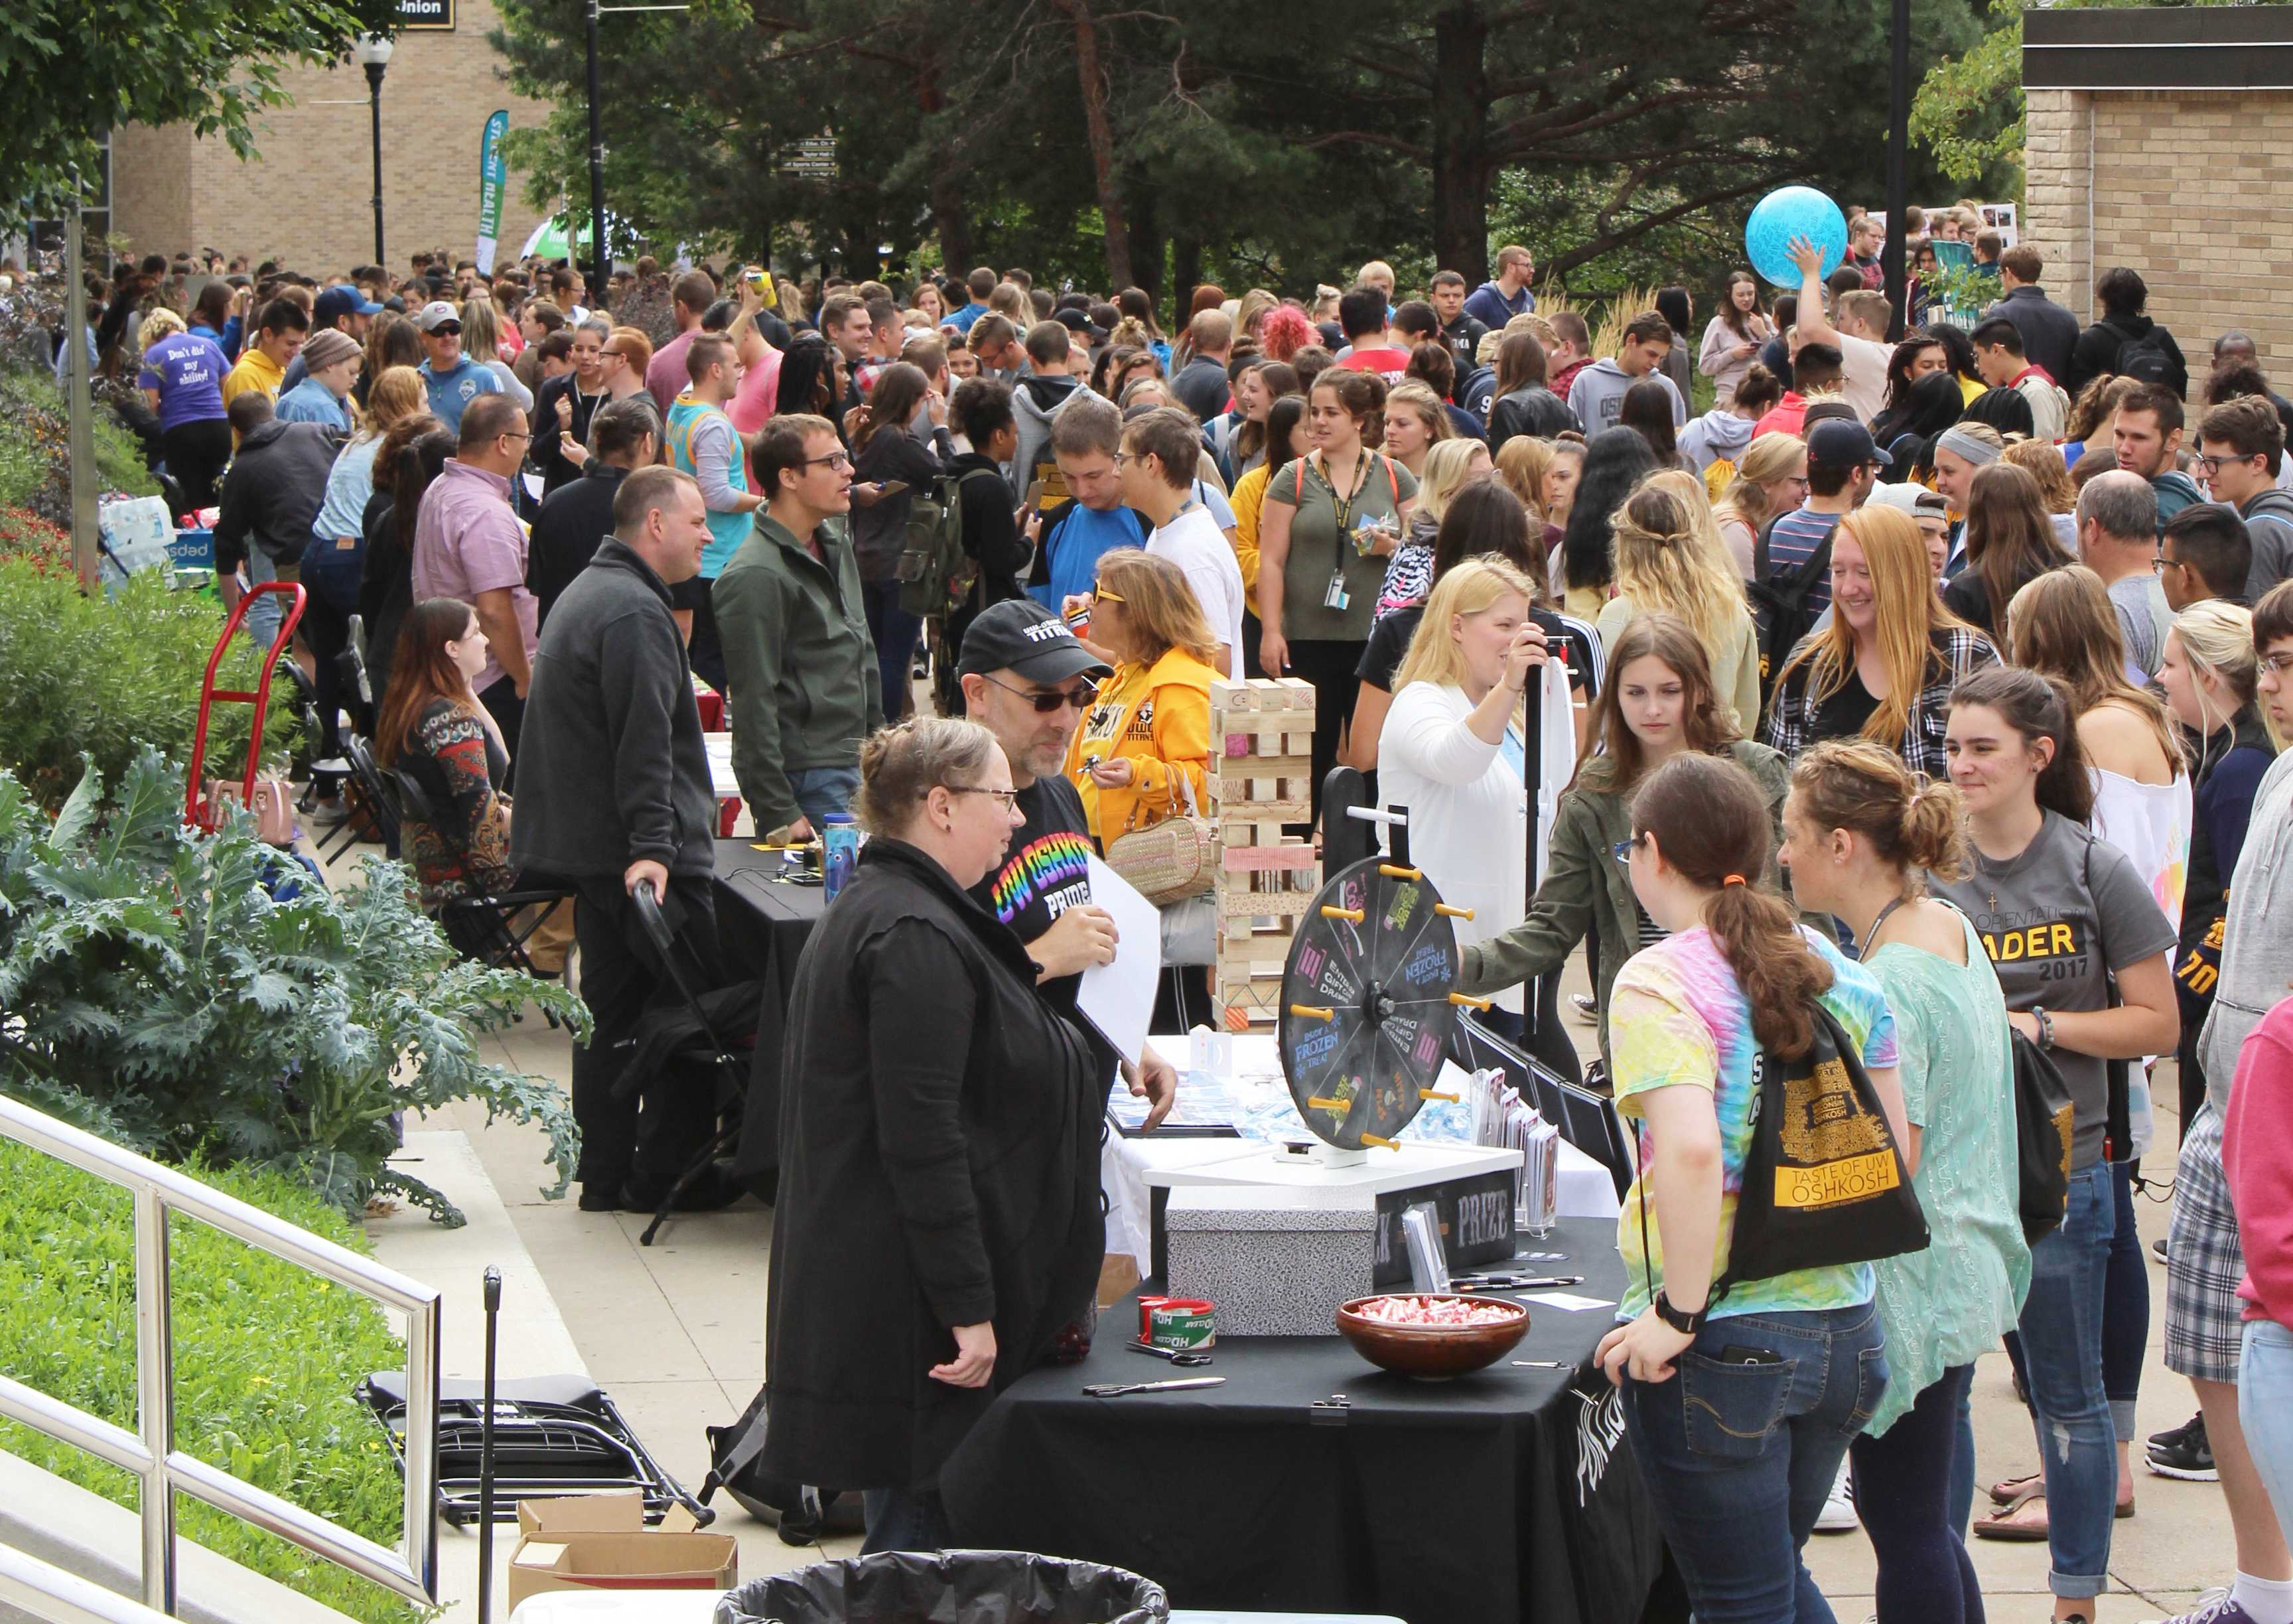 Taste of Oshkosh allows students to explore campus opportunities